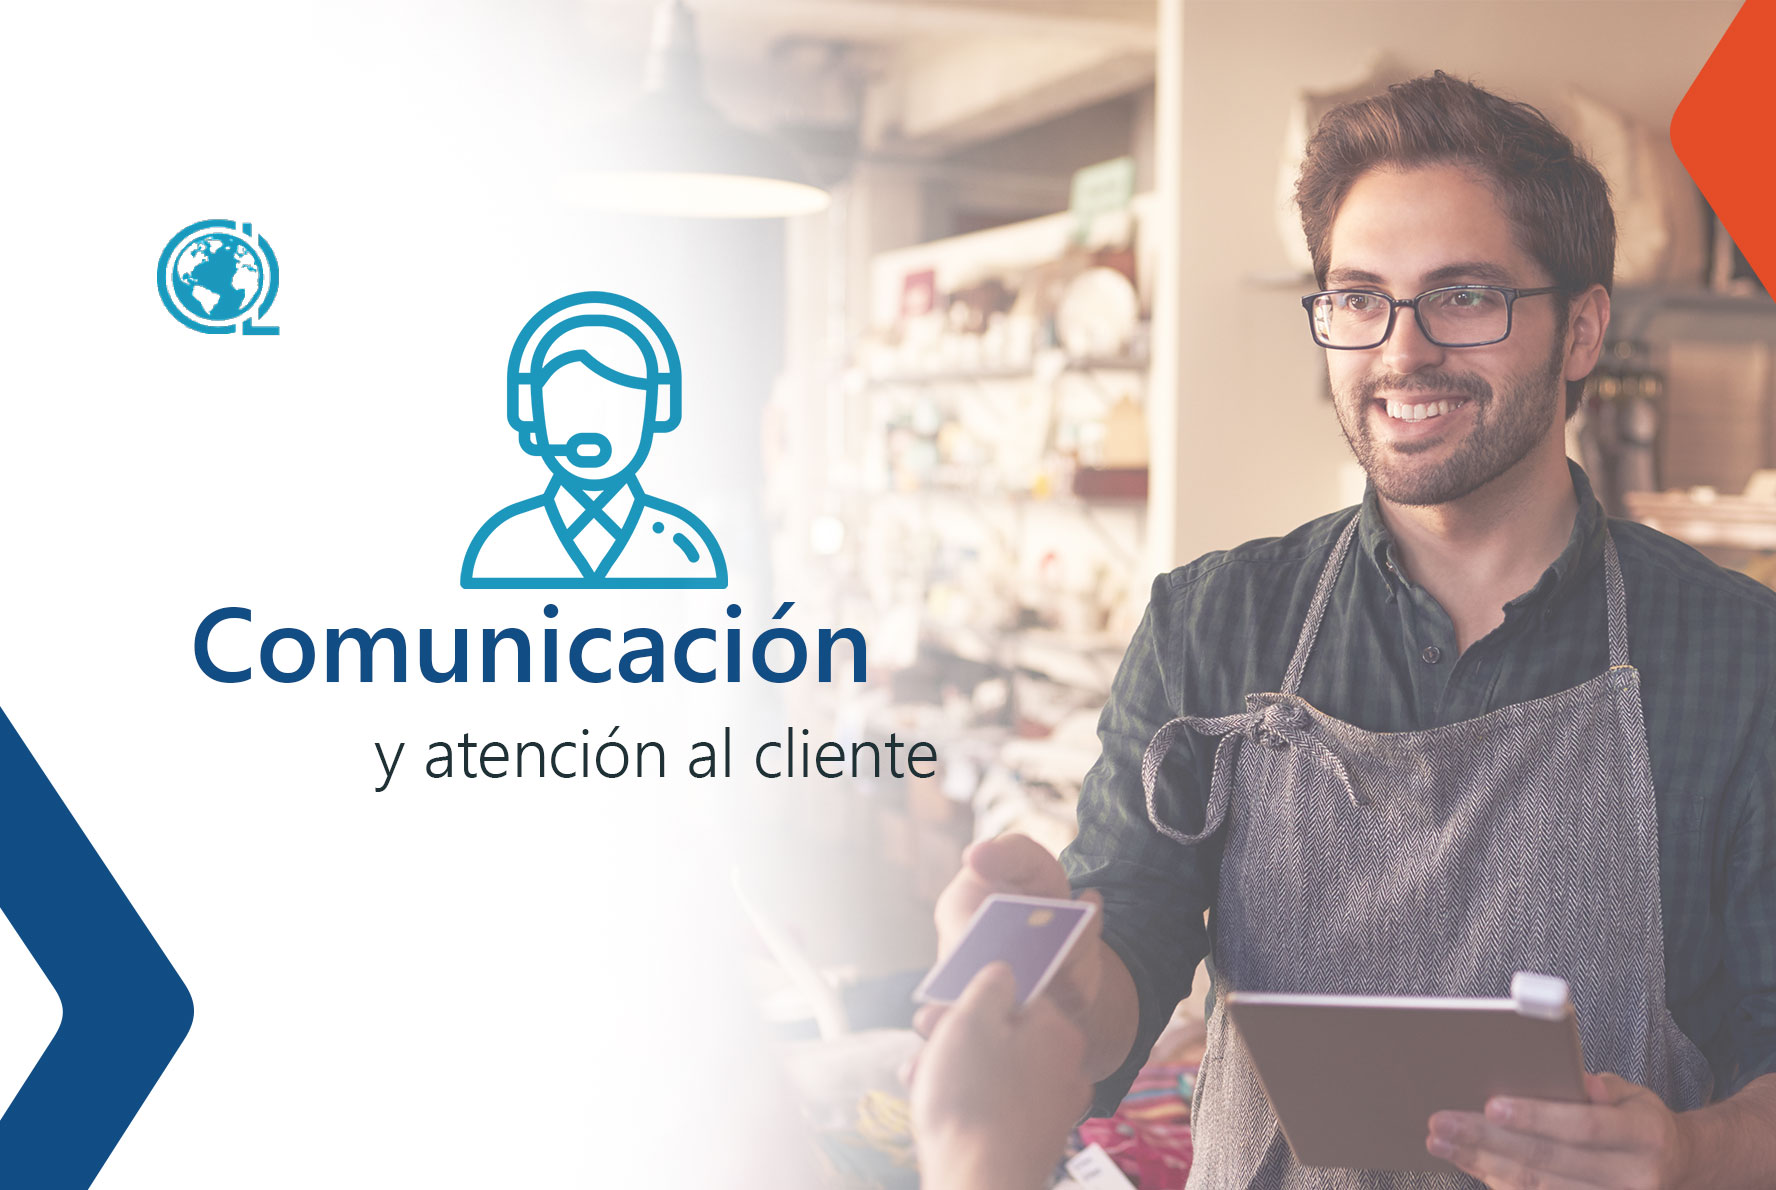 Effective communication and customer service